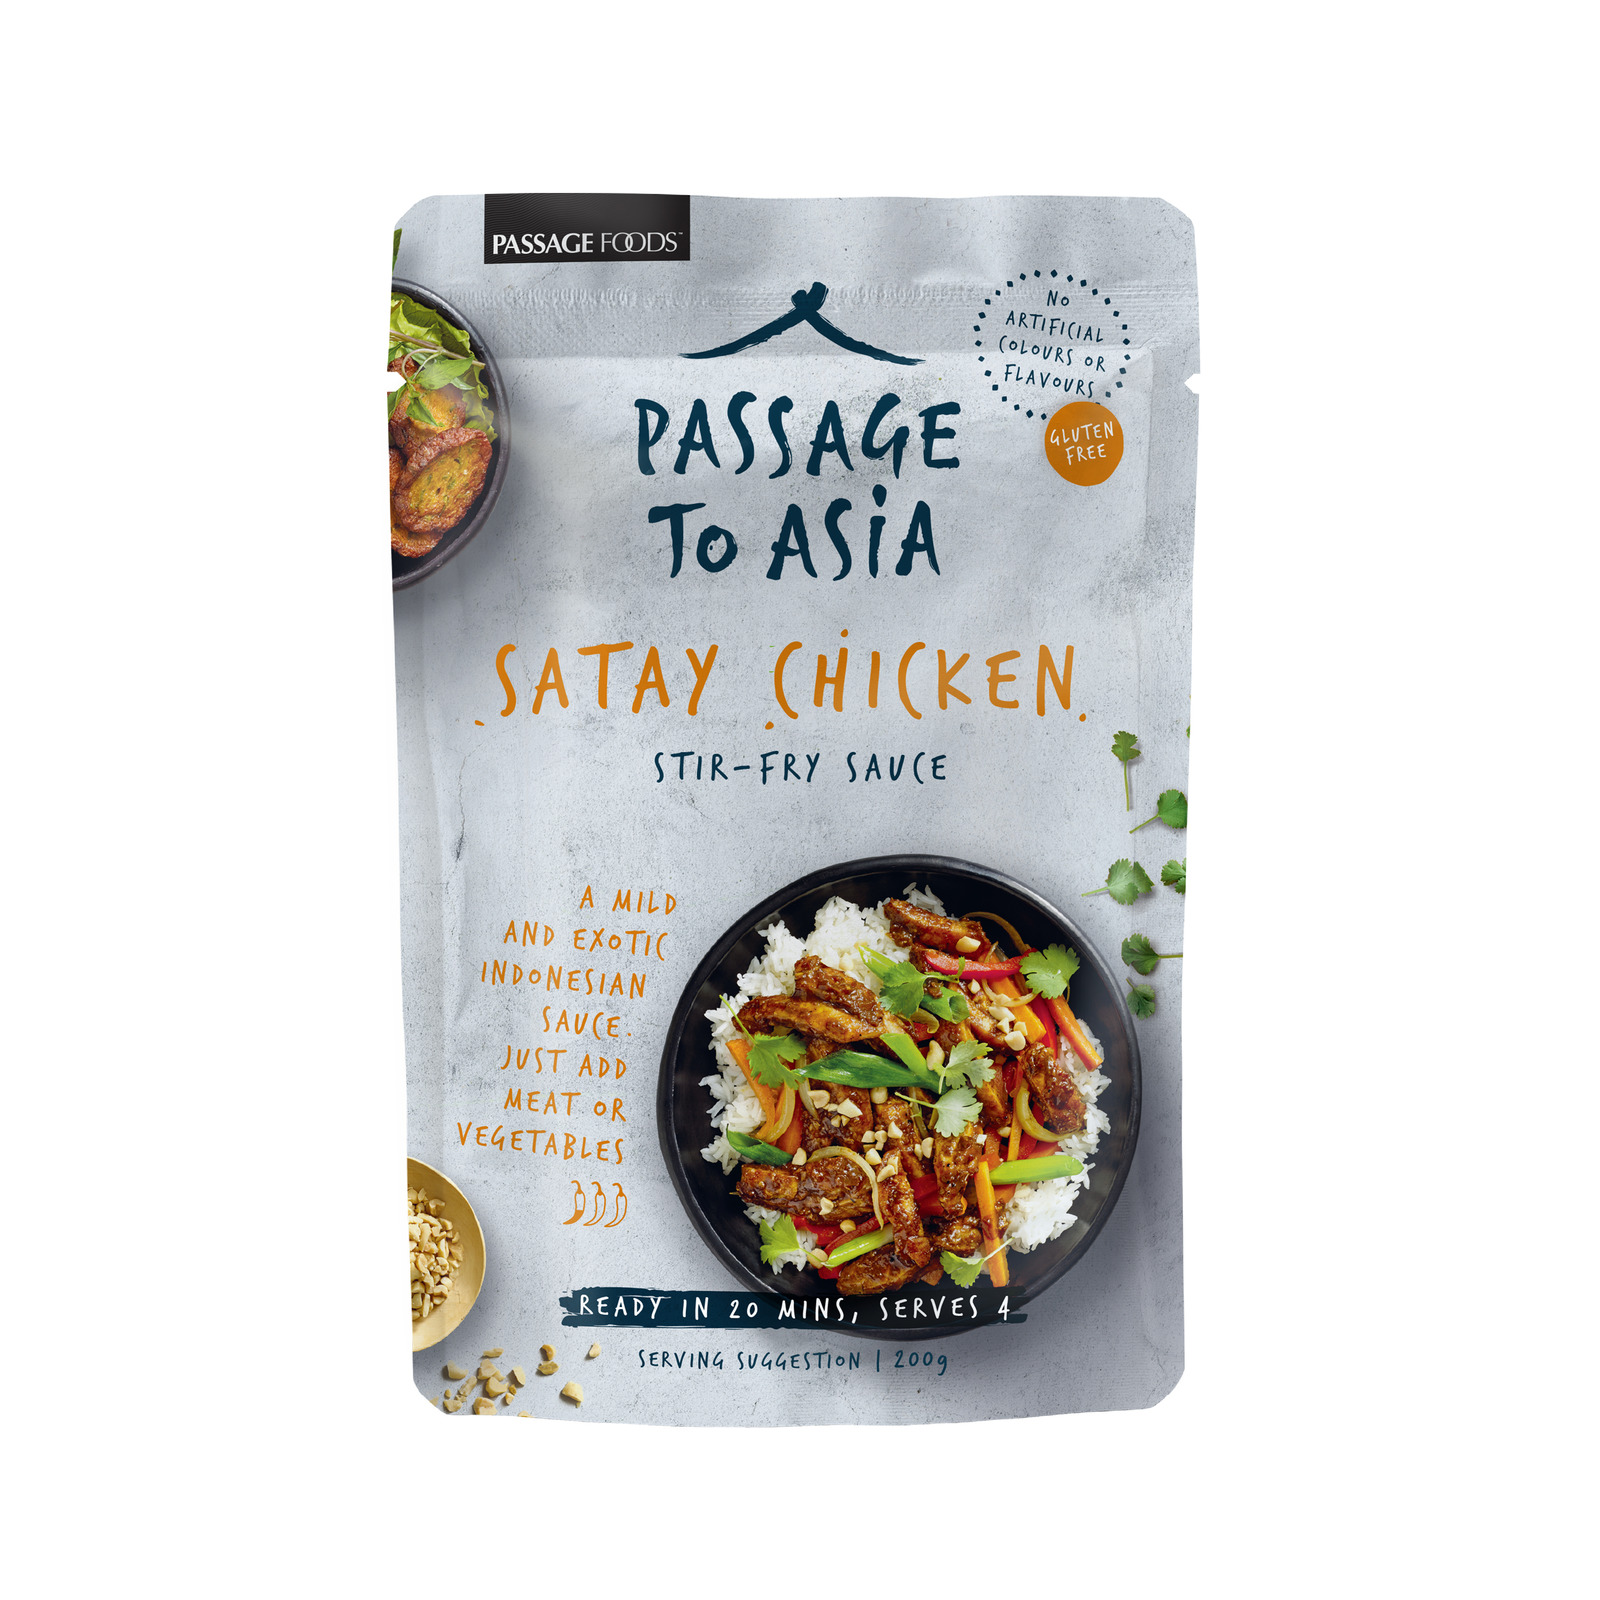 Passage Foods Passage to Asia - Satay Chicken Stir Fry Sauce - By Sonnamera